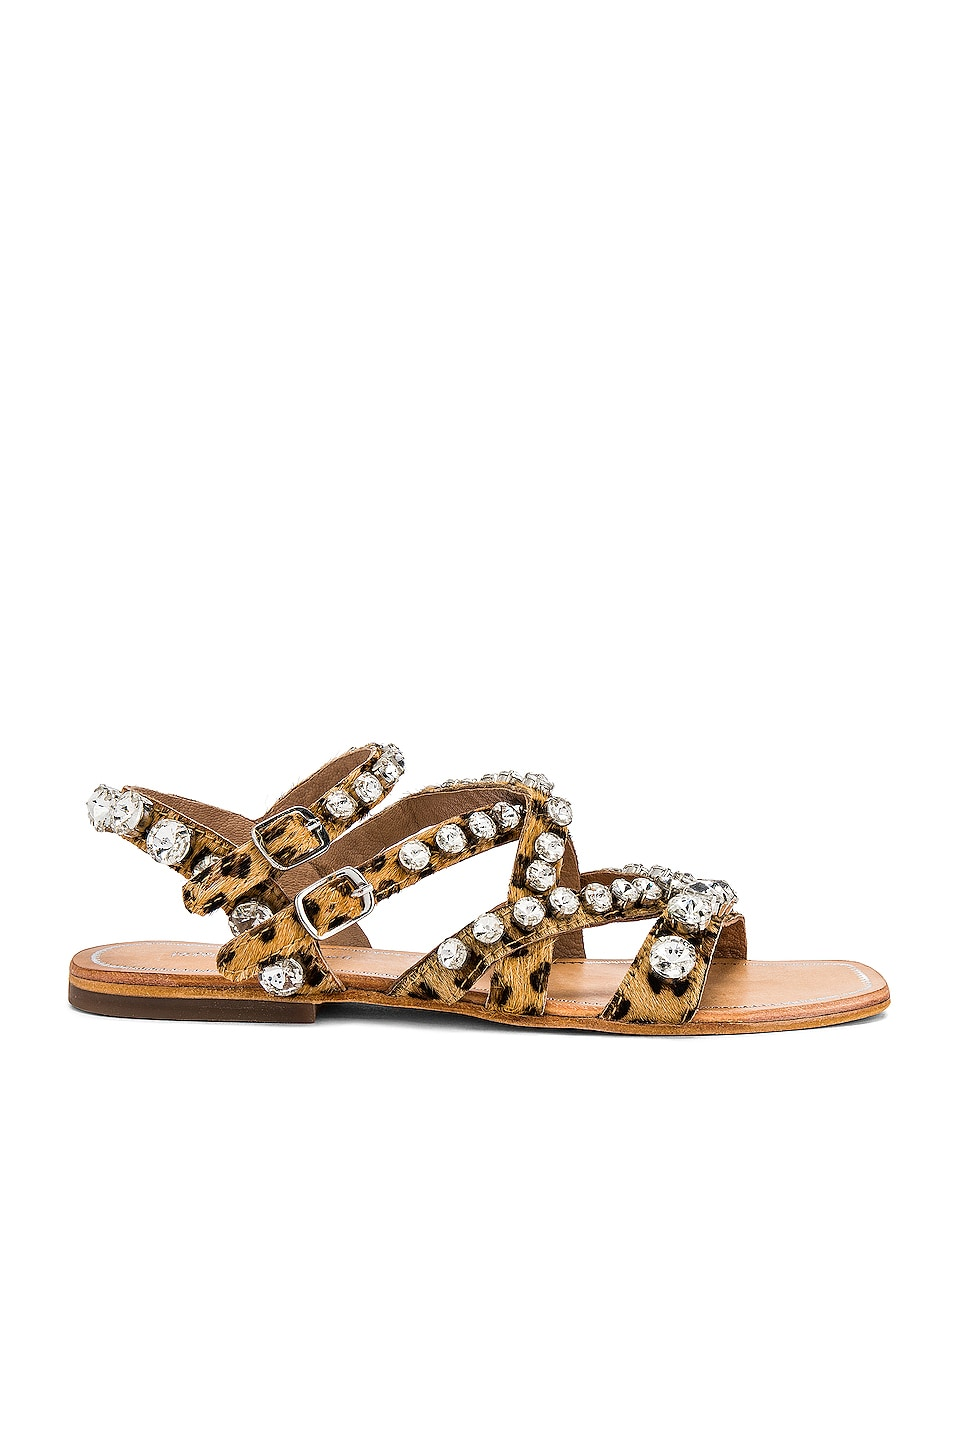 Jeffrey Campbell Calath Sandal in Tan Cheetah